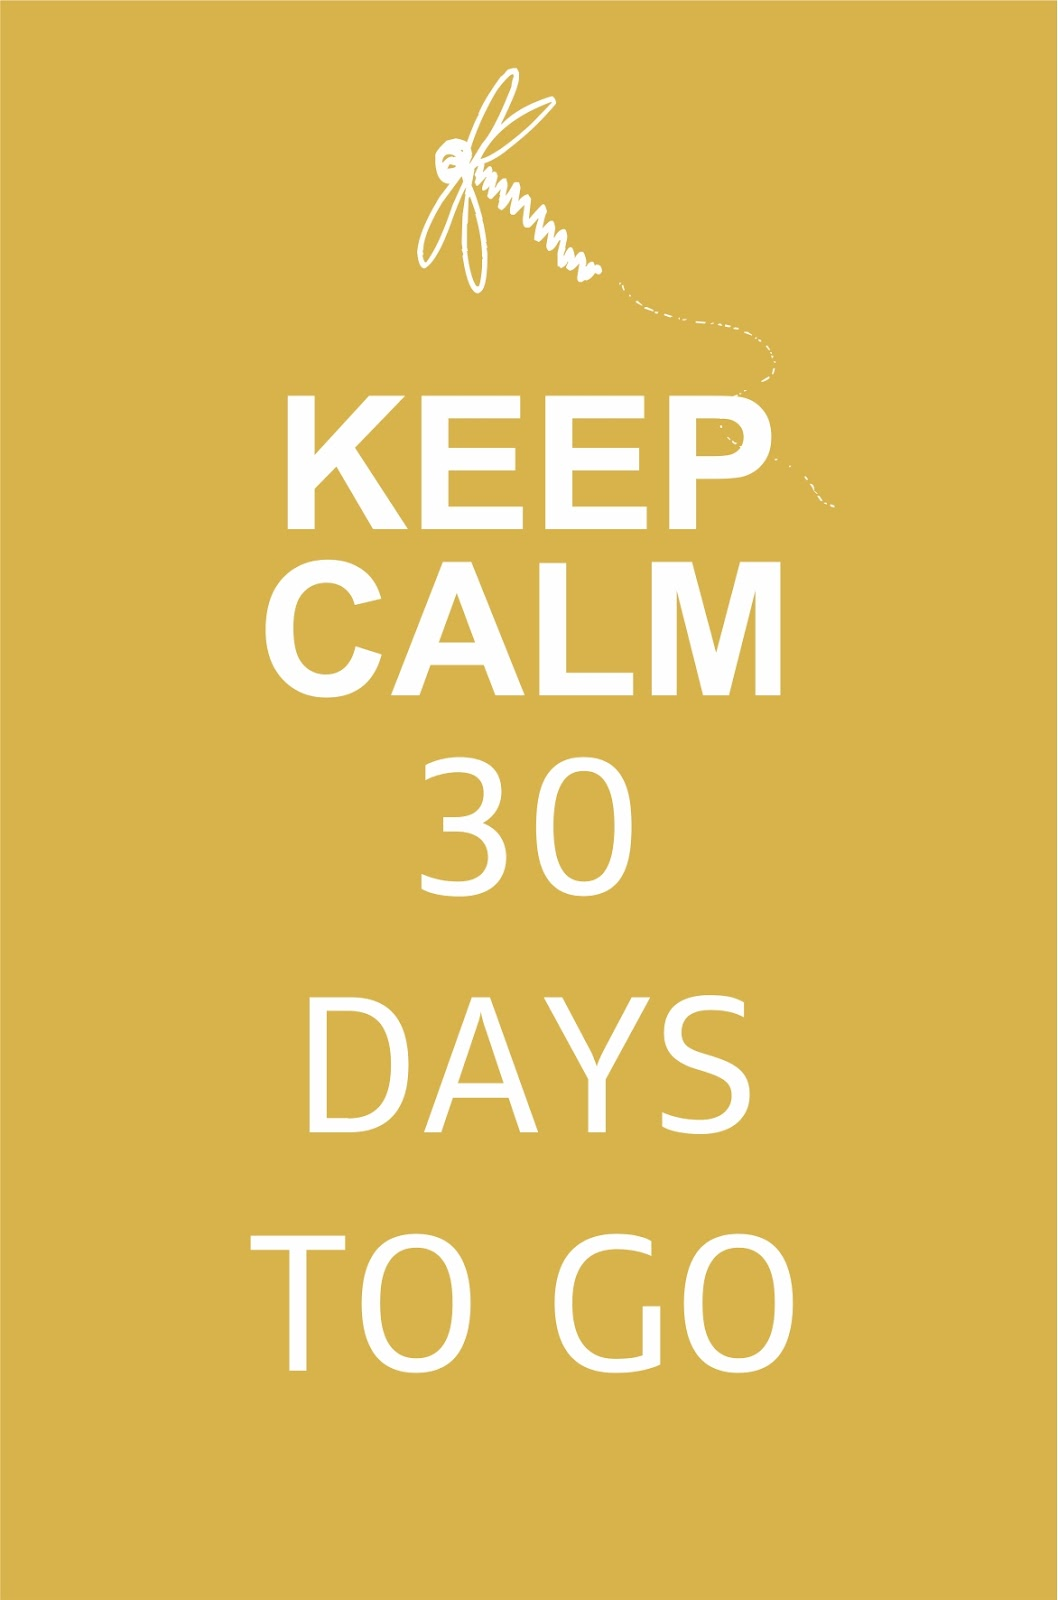 Keep Calm 30 Days to Go